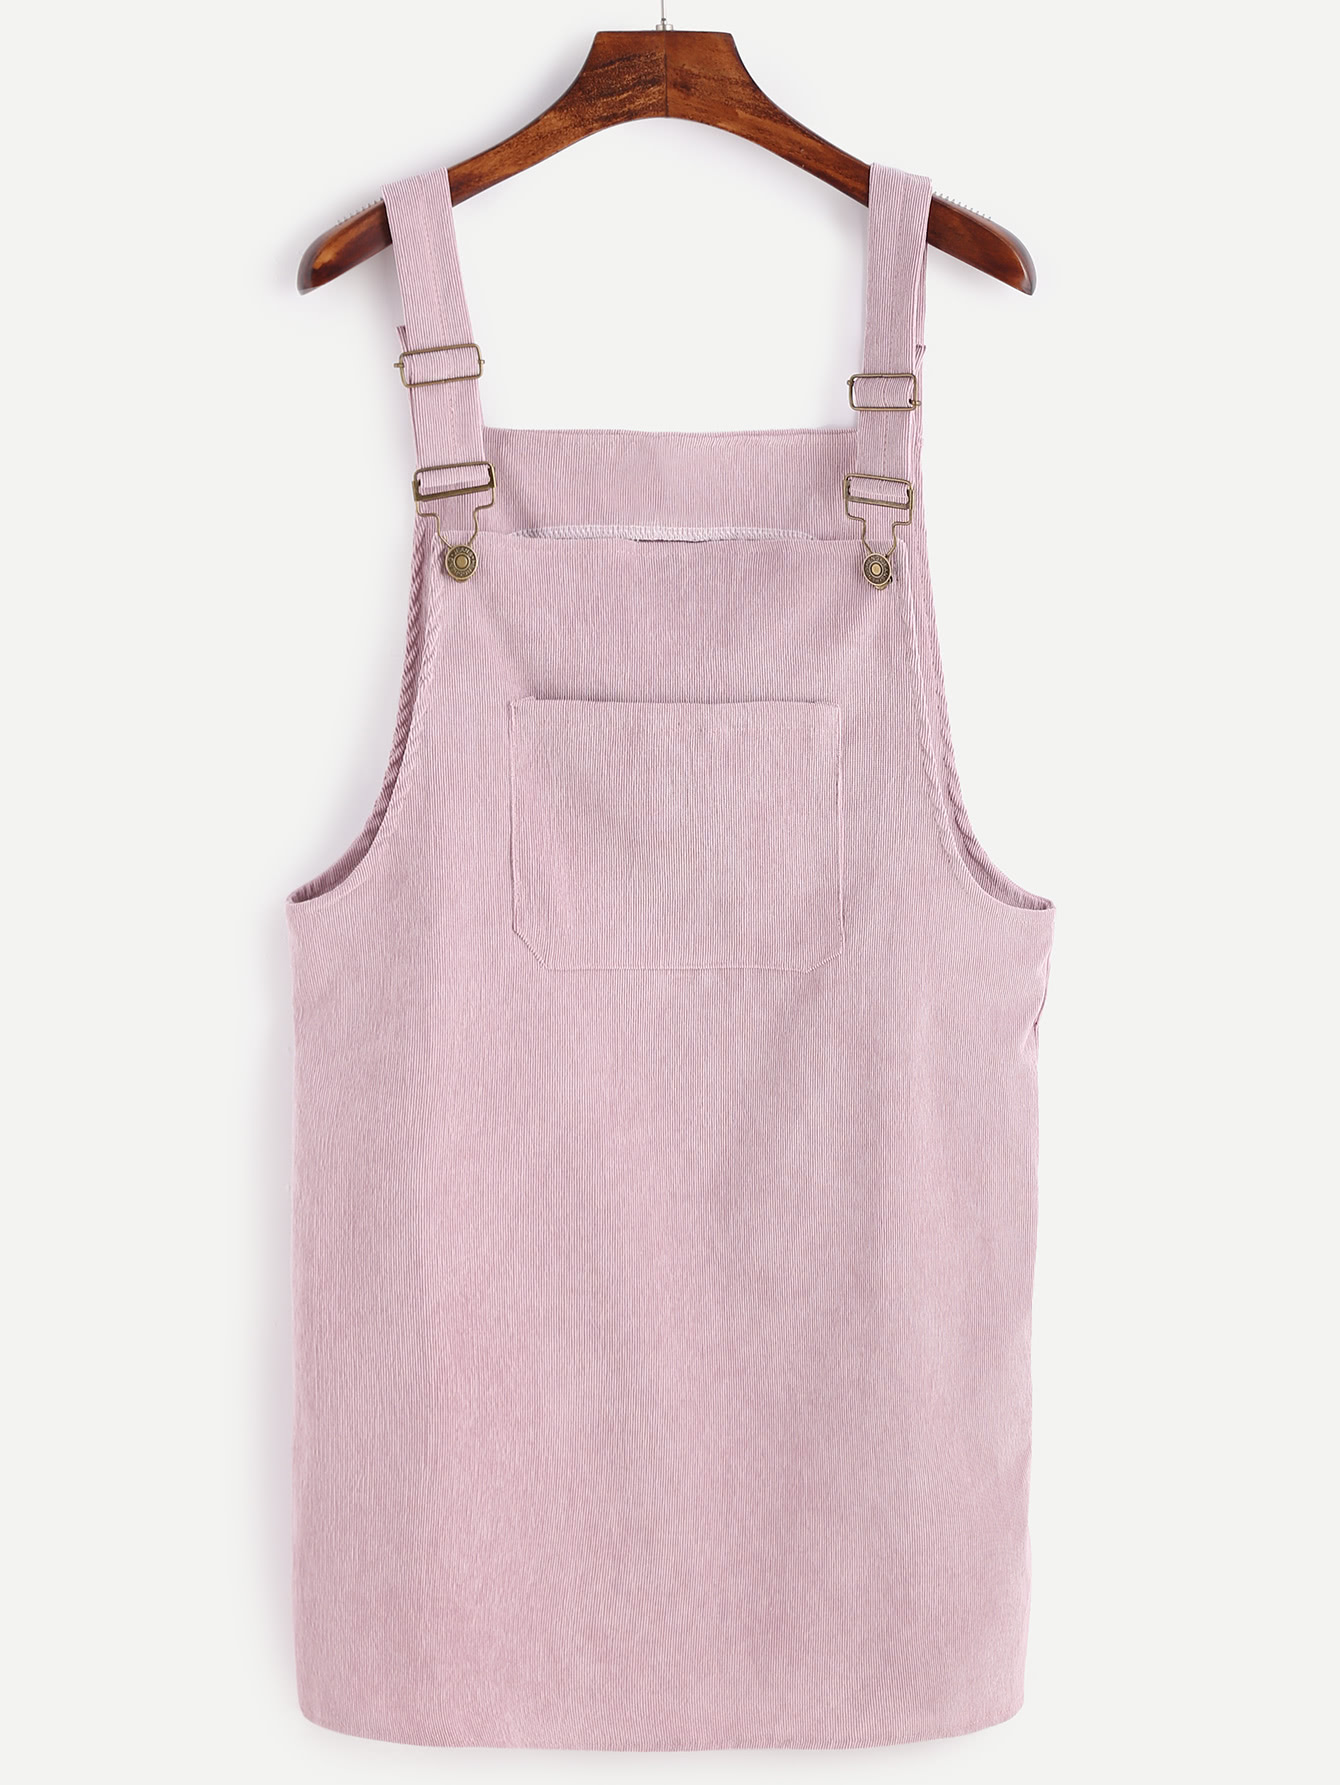 Pink Corduroy Overall Dress With Pocket dress161021102